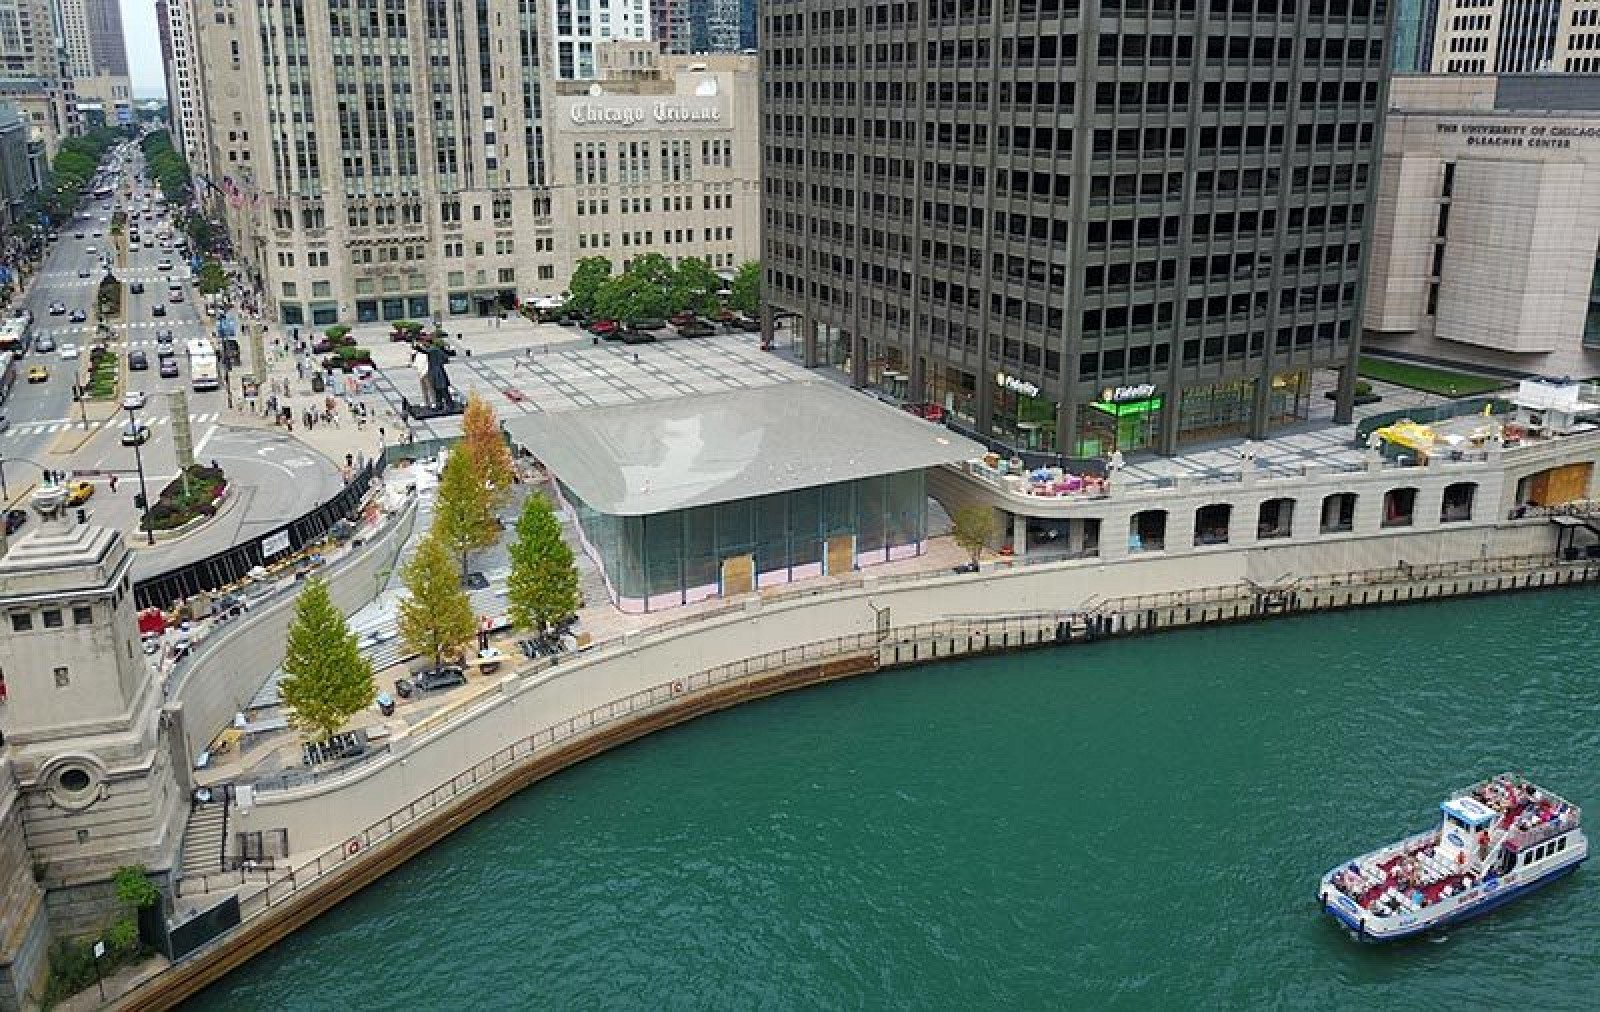 Apples Beautiful Chicago River Store Opens October Updated - New apple store in chicago will have a giant macbook as its roof